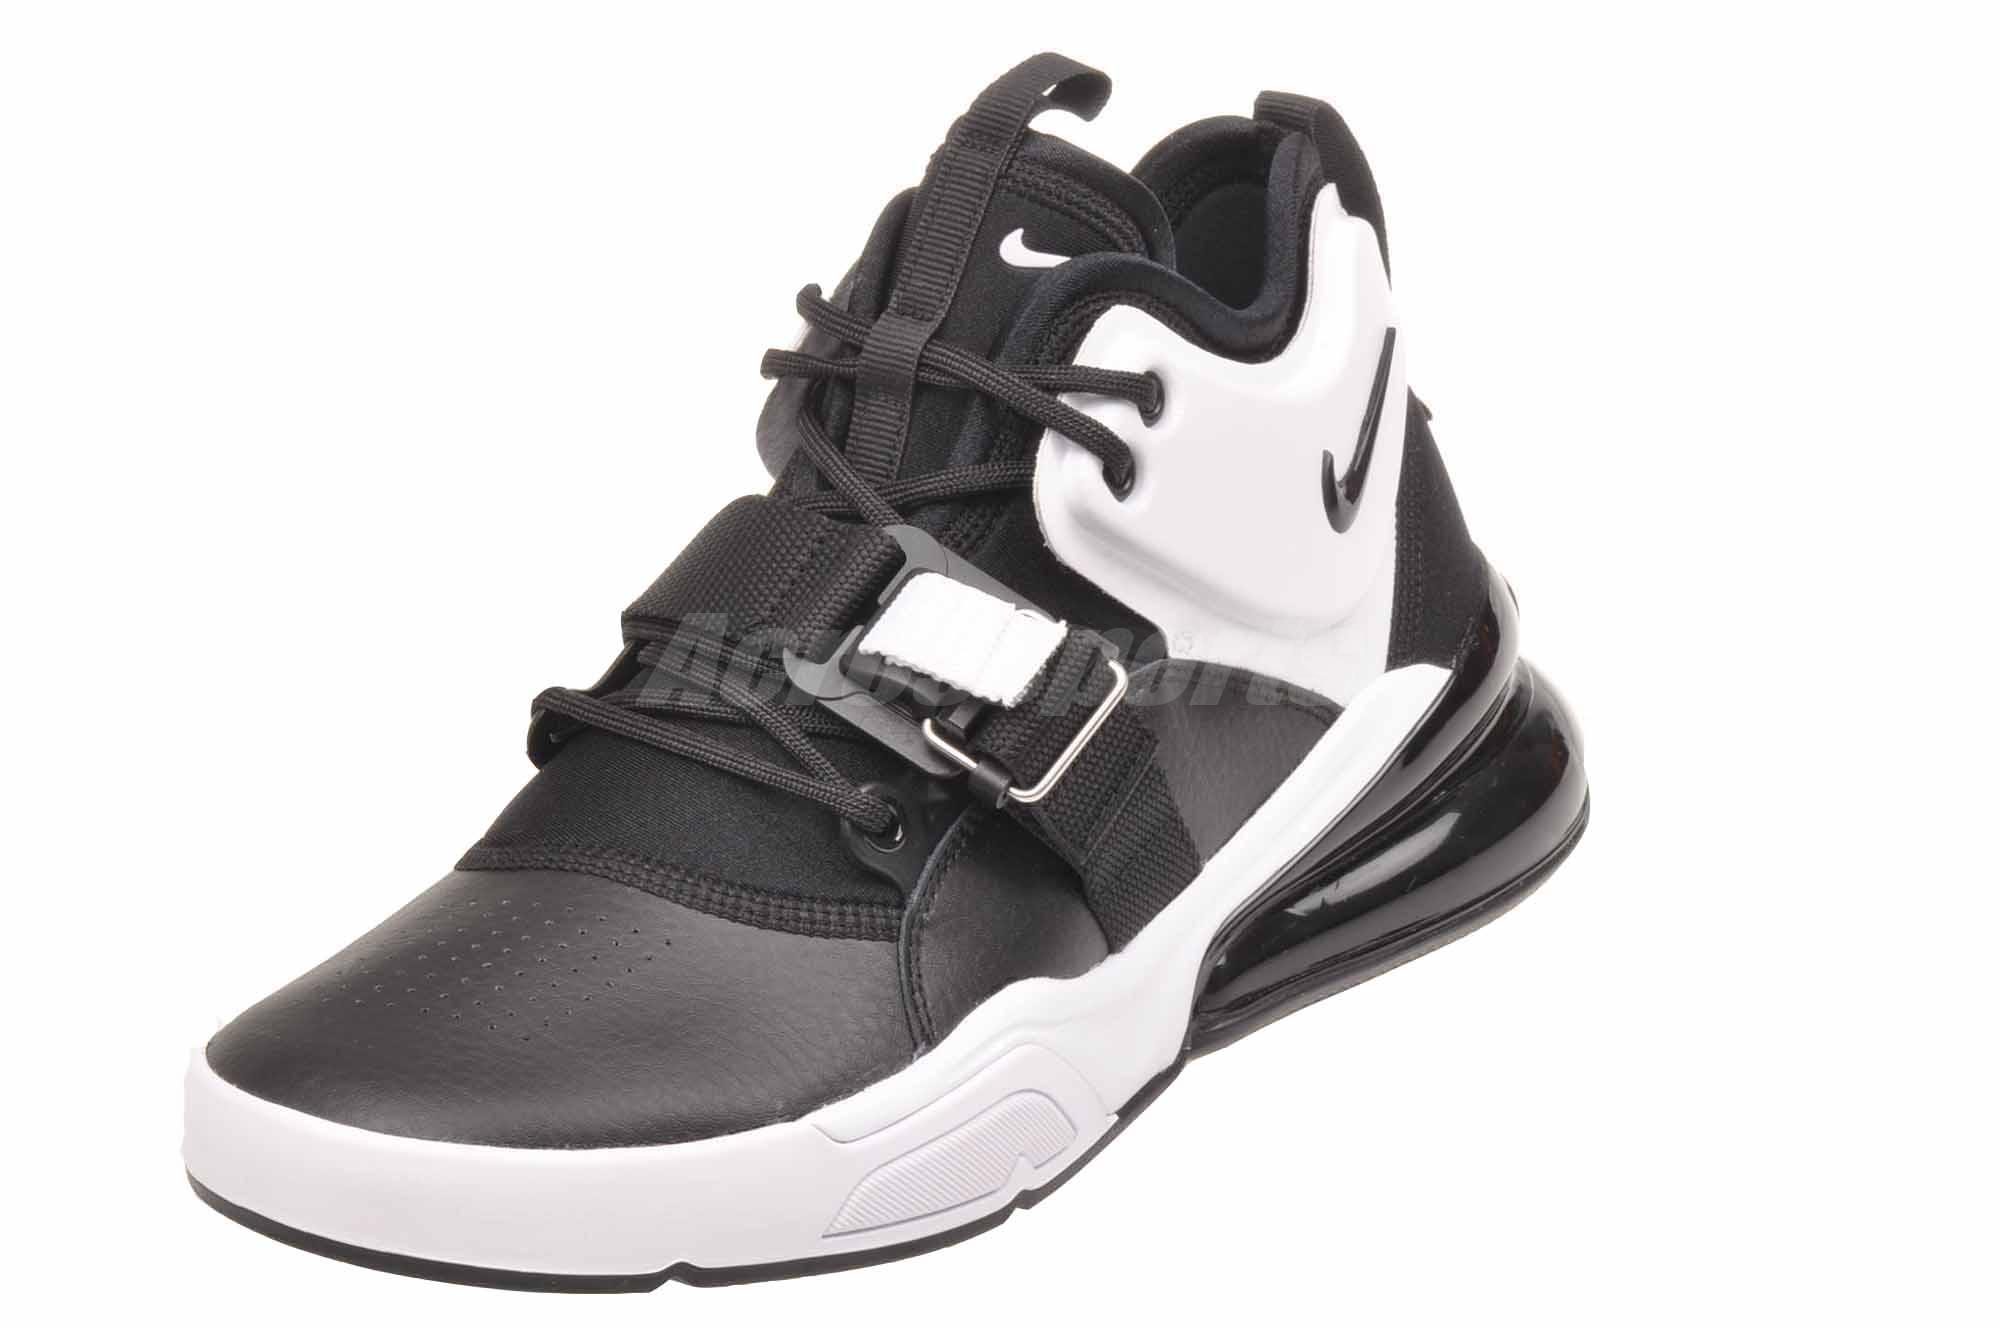 bb86cac738 Details about Nike Air Force 270 GS Basketball Kids Youth SHoes Black White  AJ8208-001